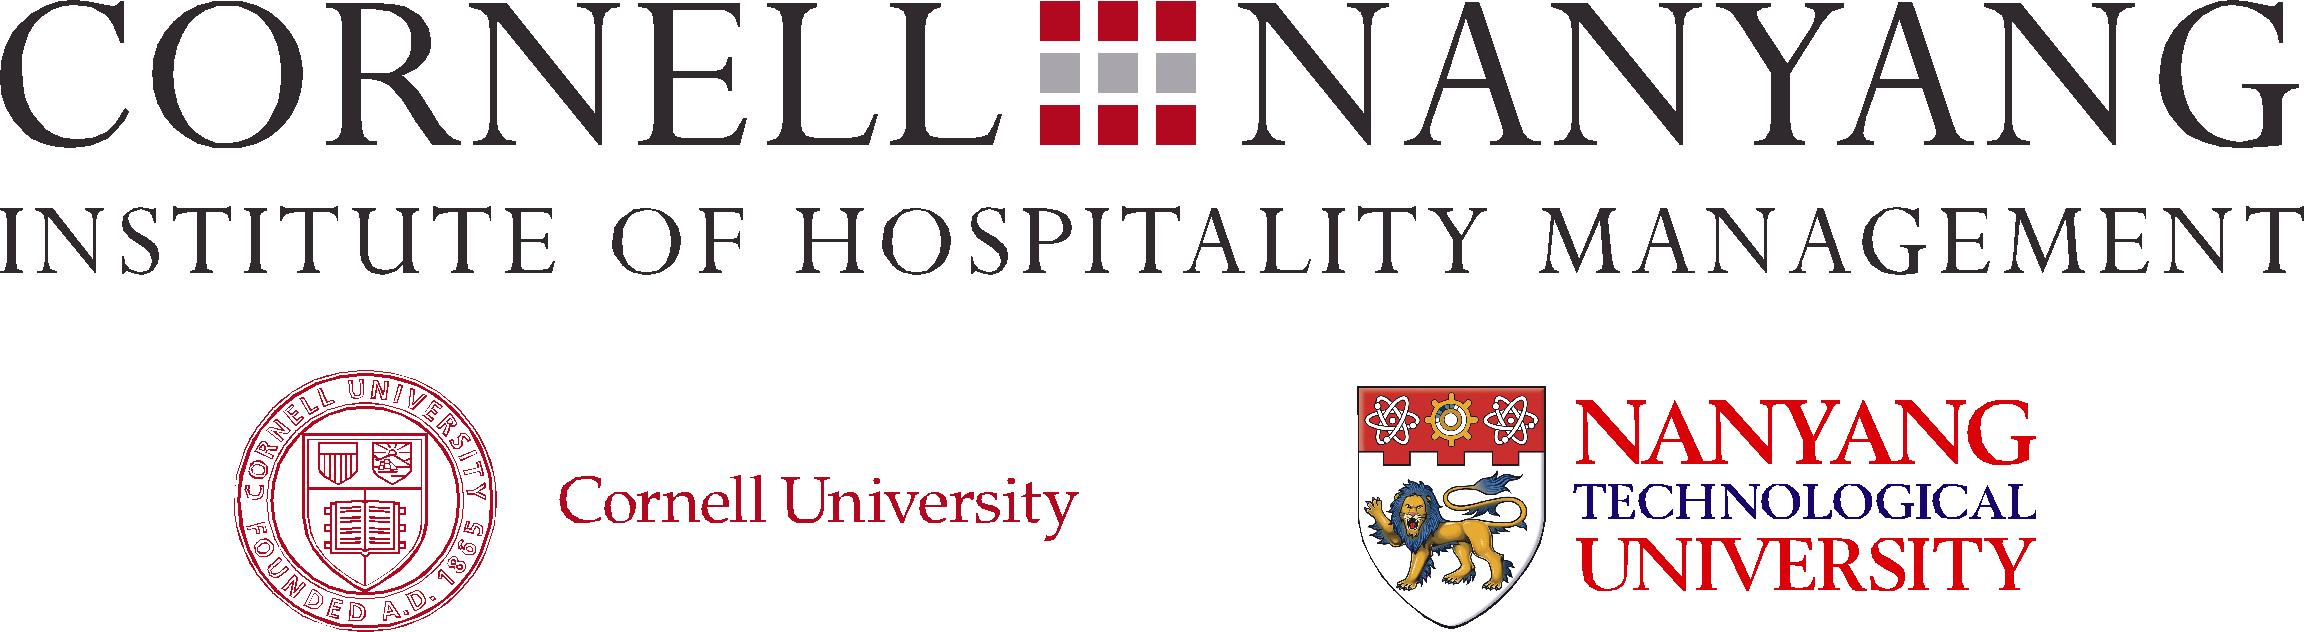 Cornell-Nanyang Institute of Hospitality Management